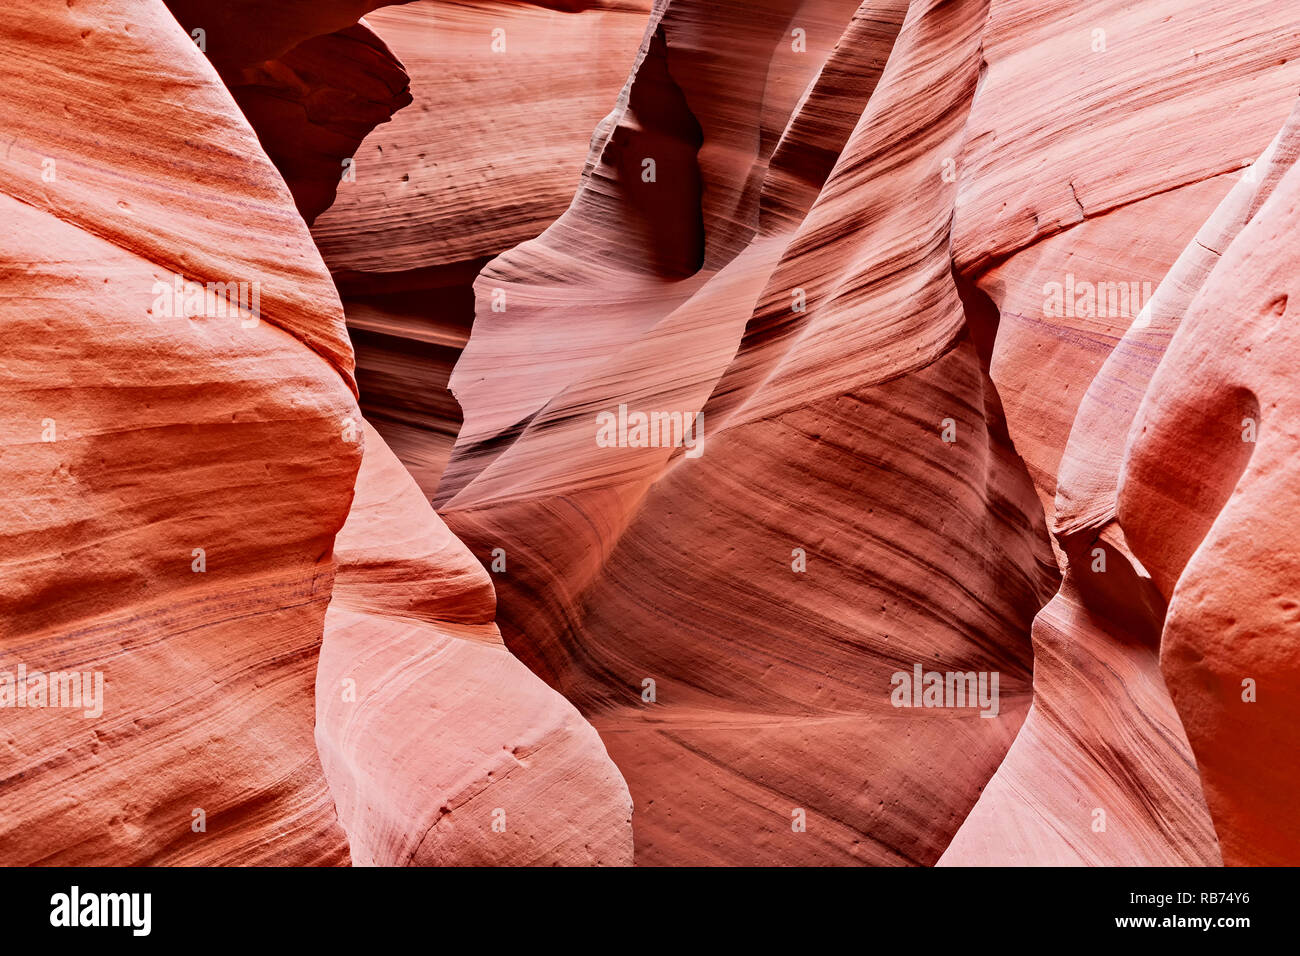 Rock Edges in slot canyon - Stock Image